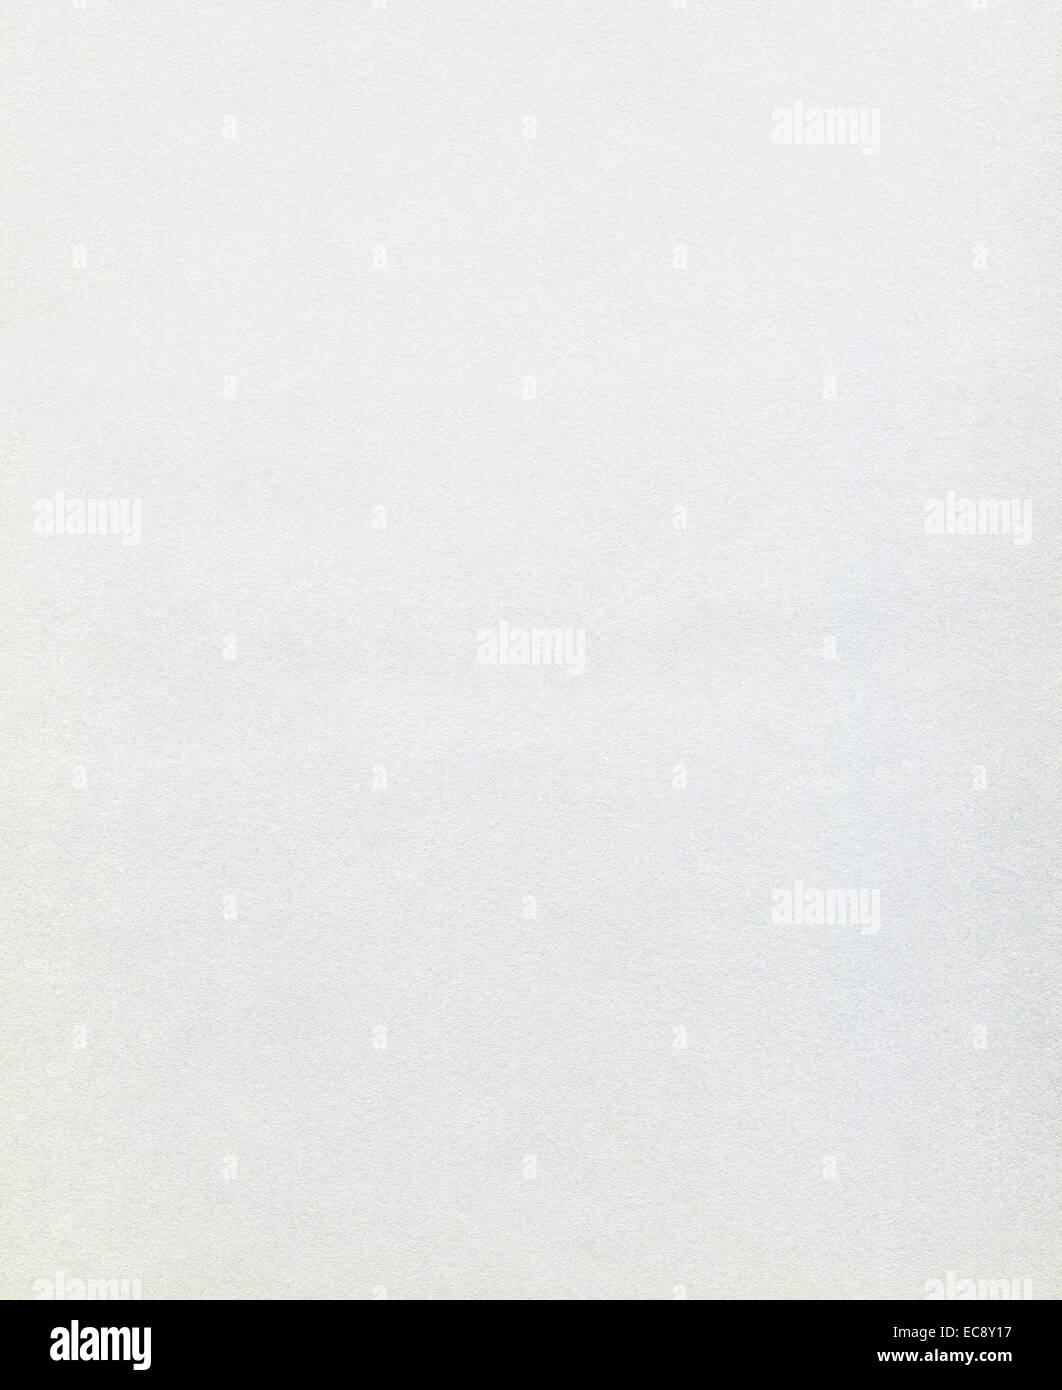 Watercolor paper texture, abstract blank grey paper material - Stock Image